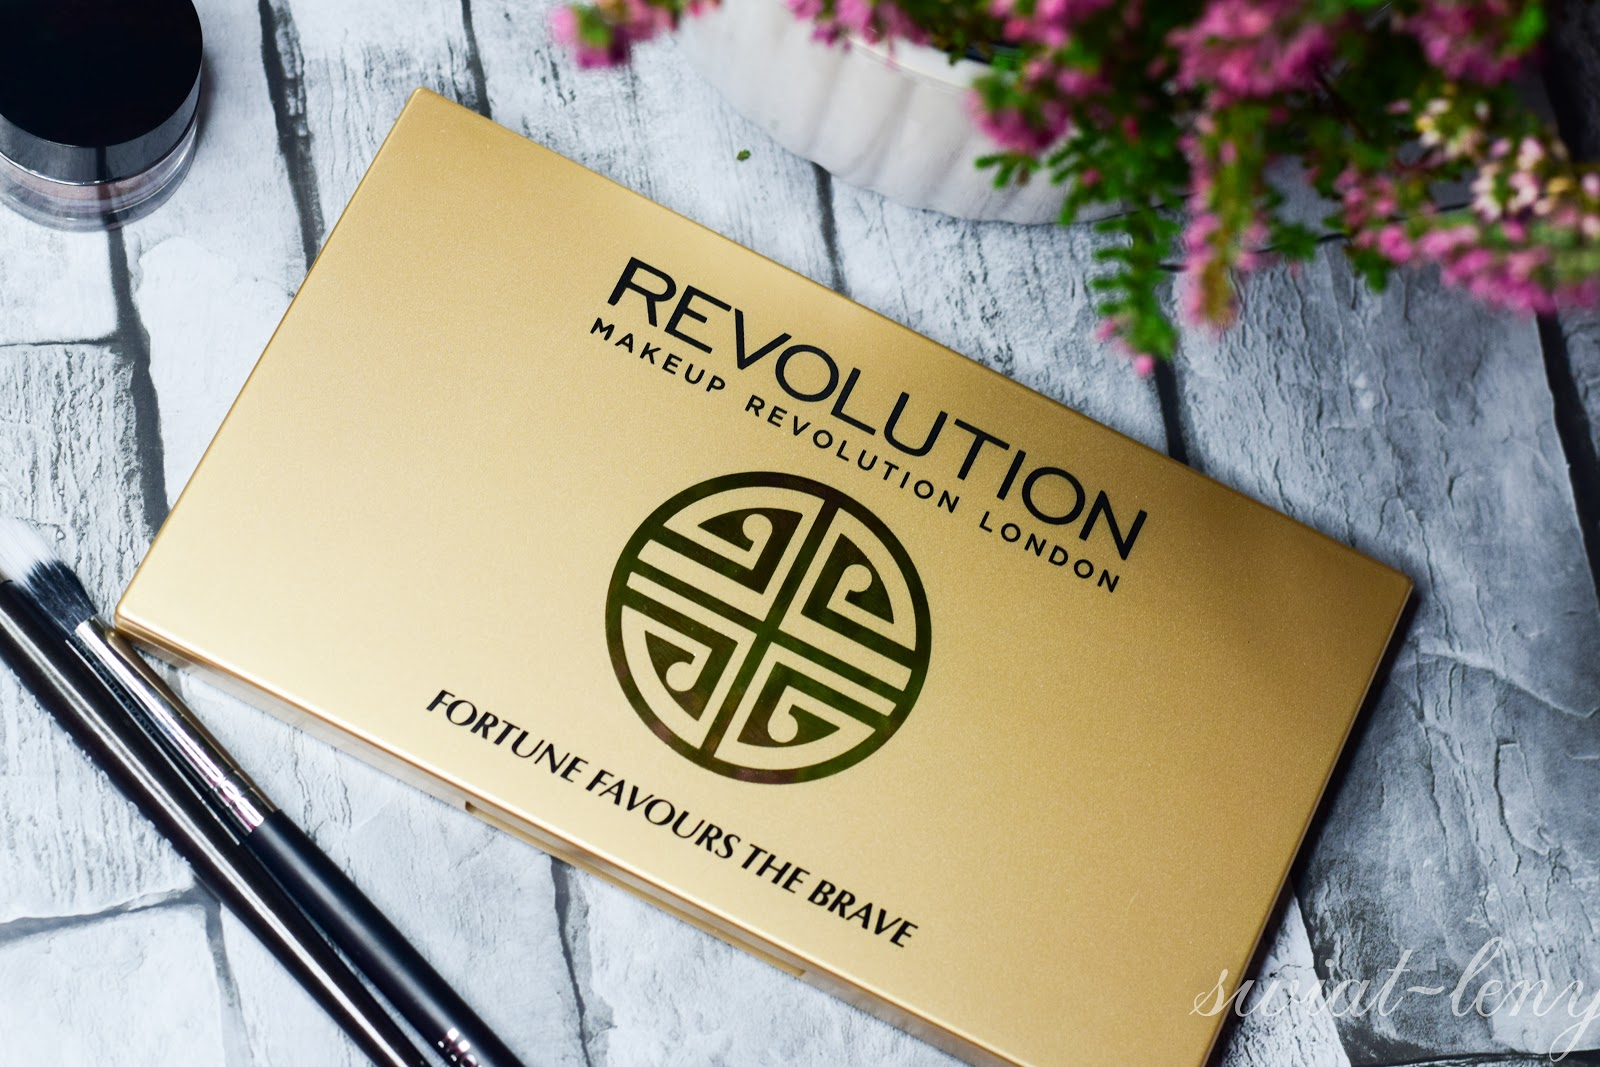 Makeup Revolution Fortune favours the brave